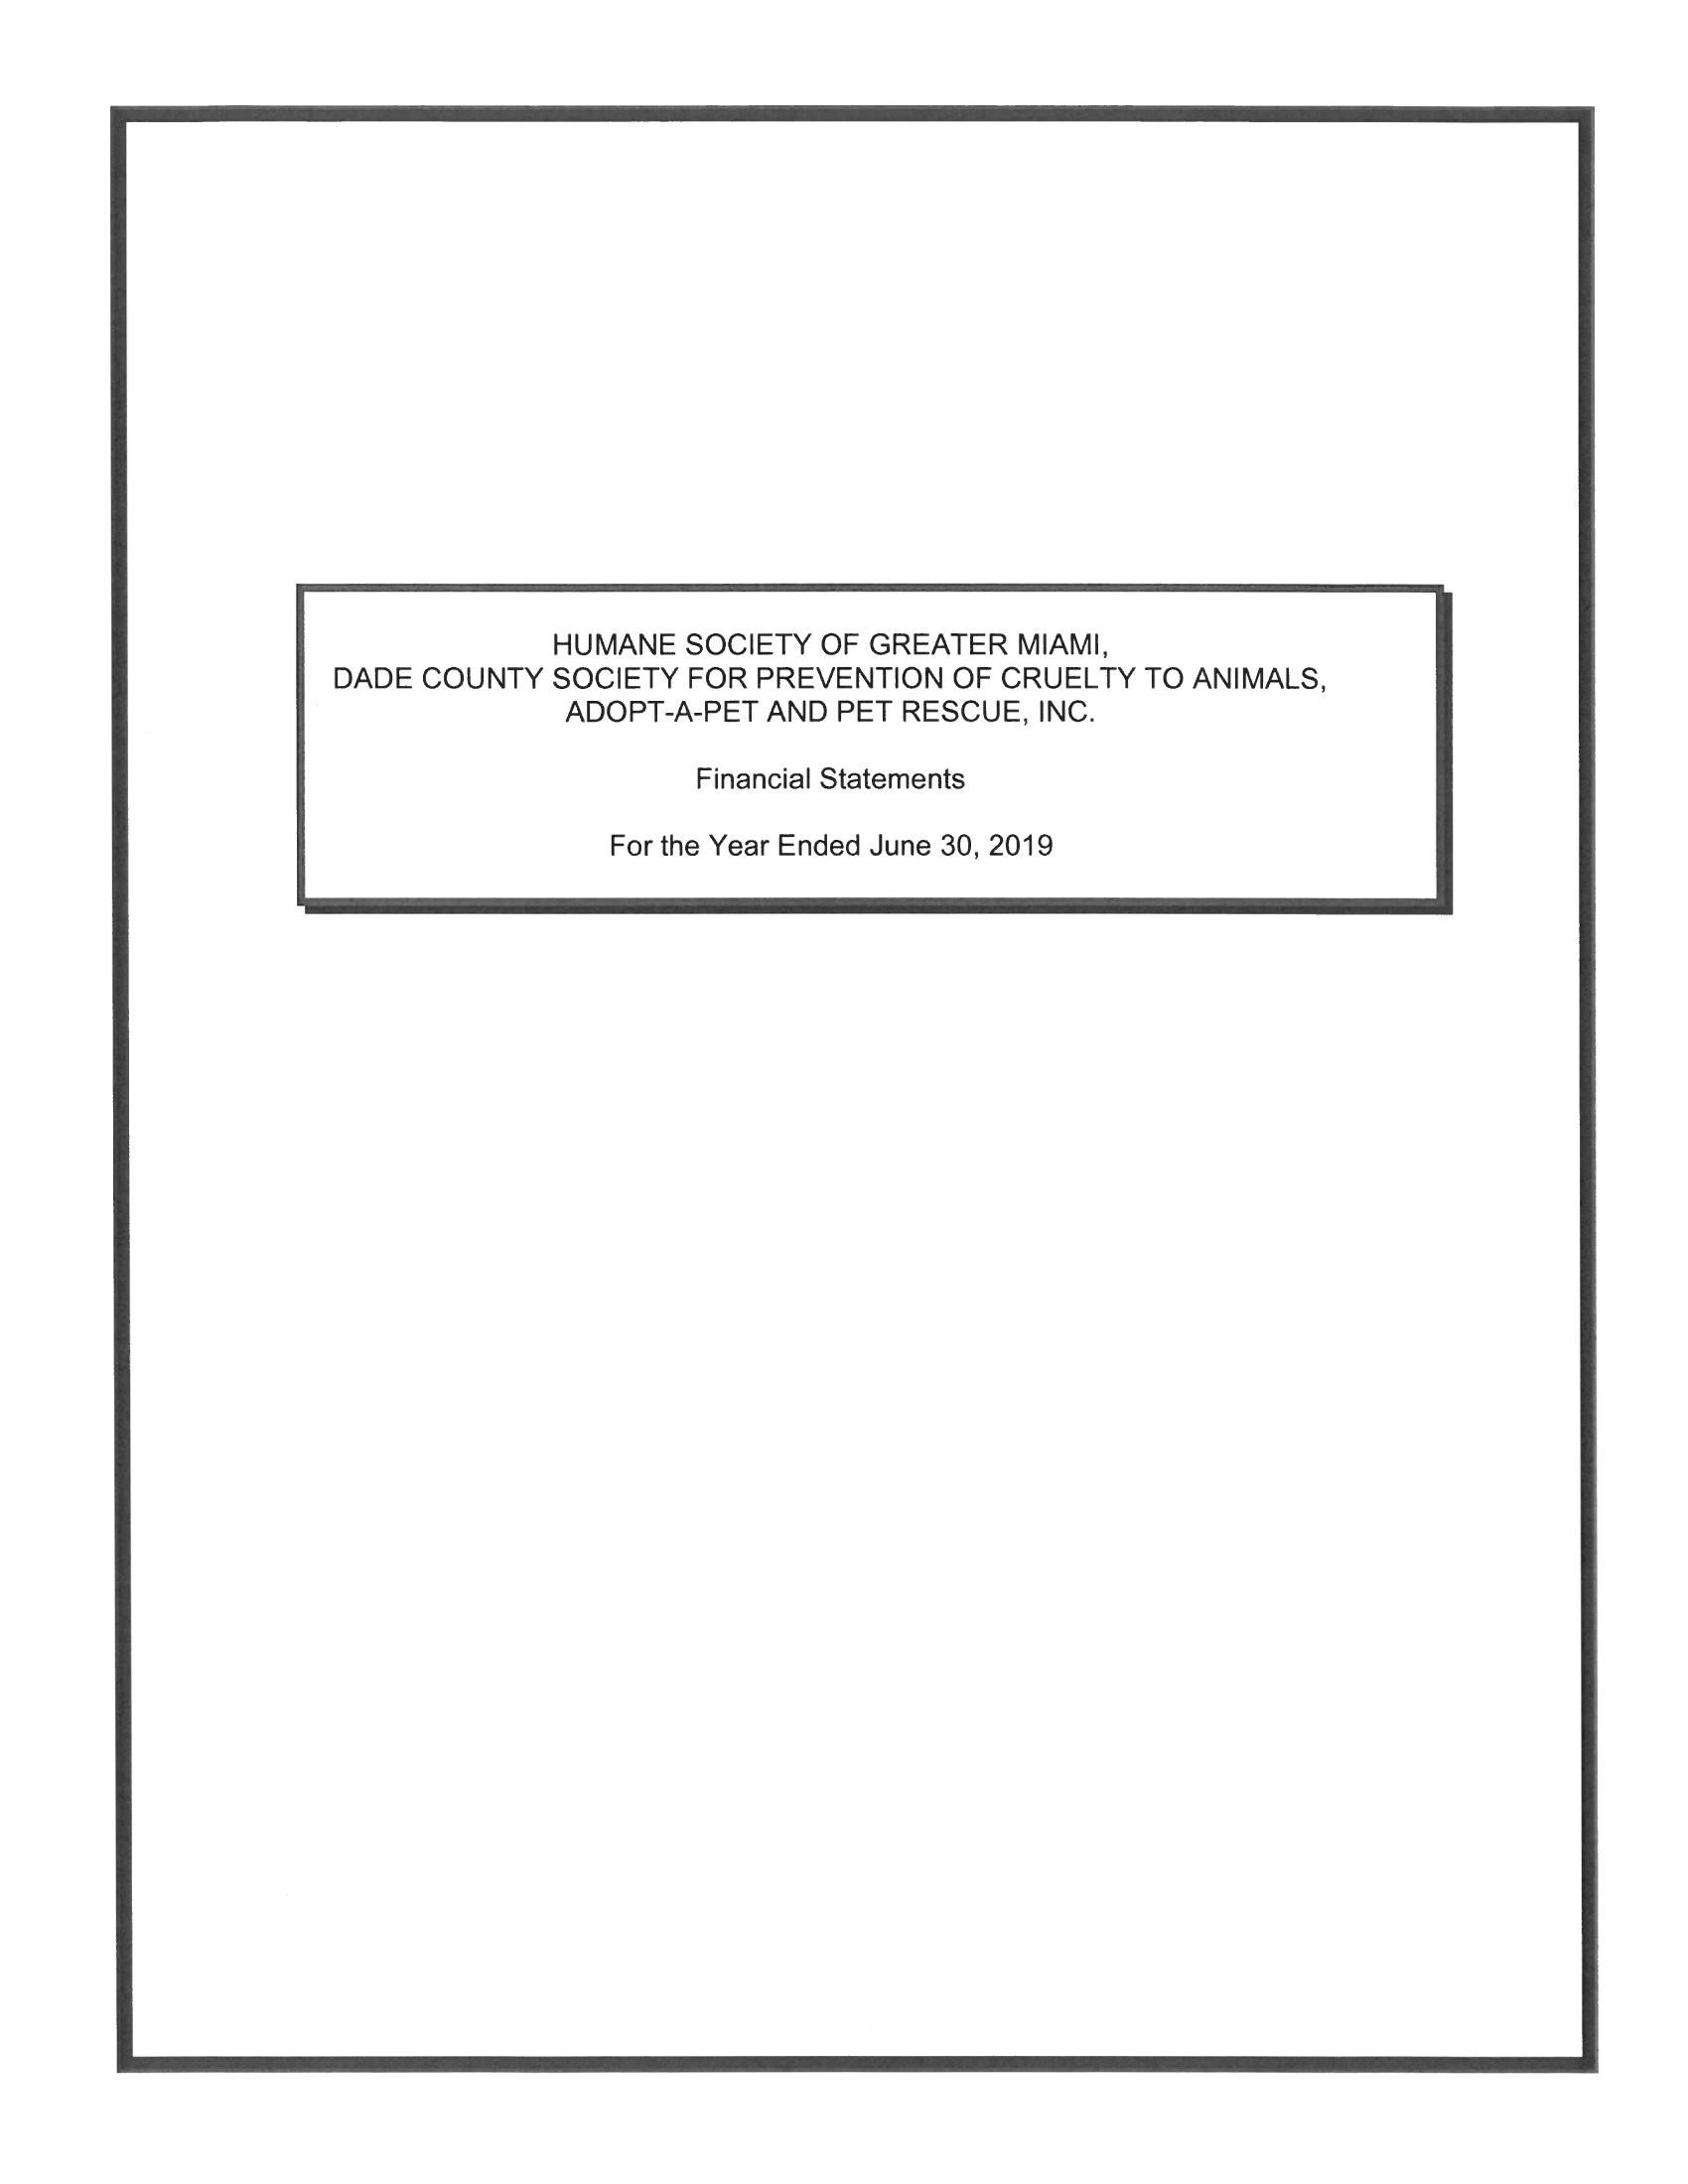 Audit-Report-06.30.19-Final-report_Page_01